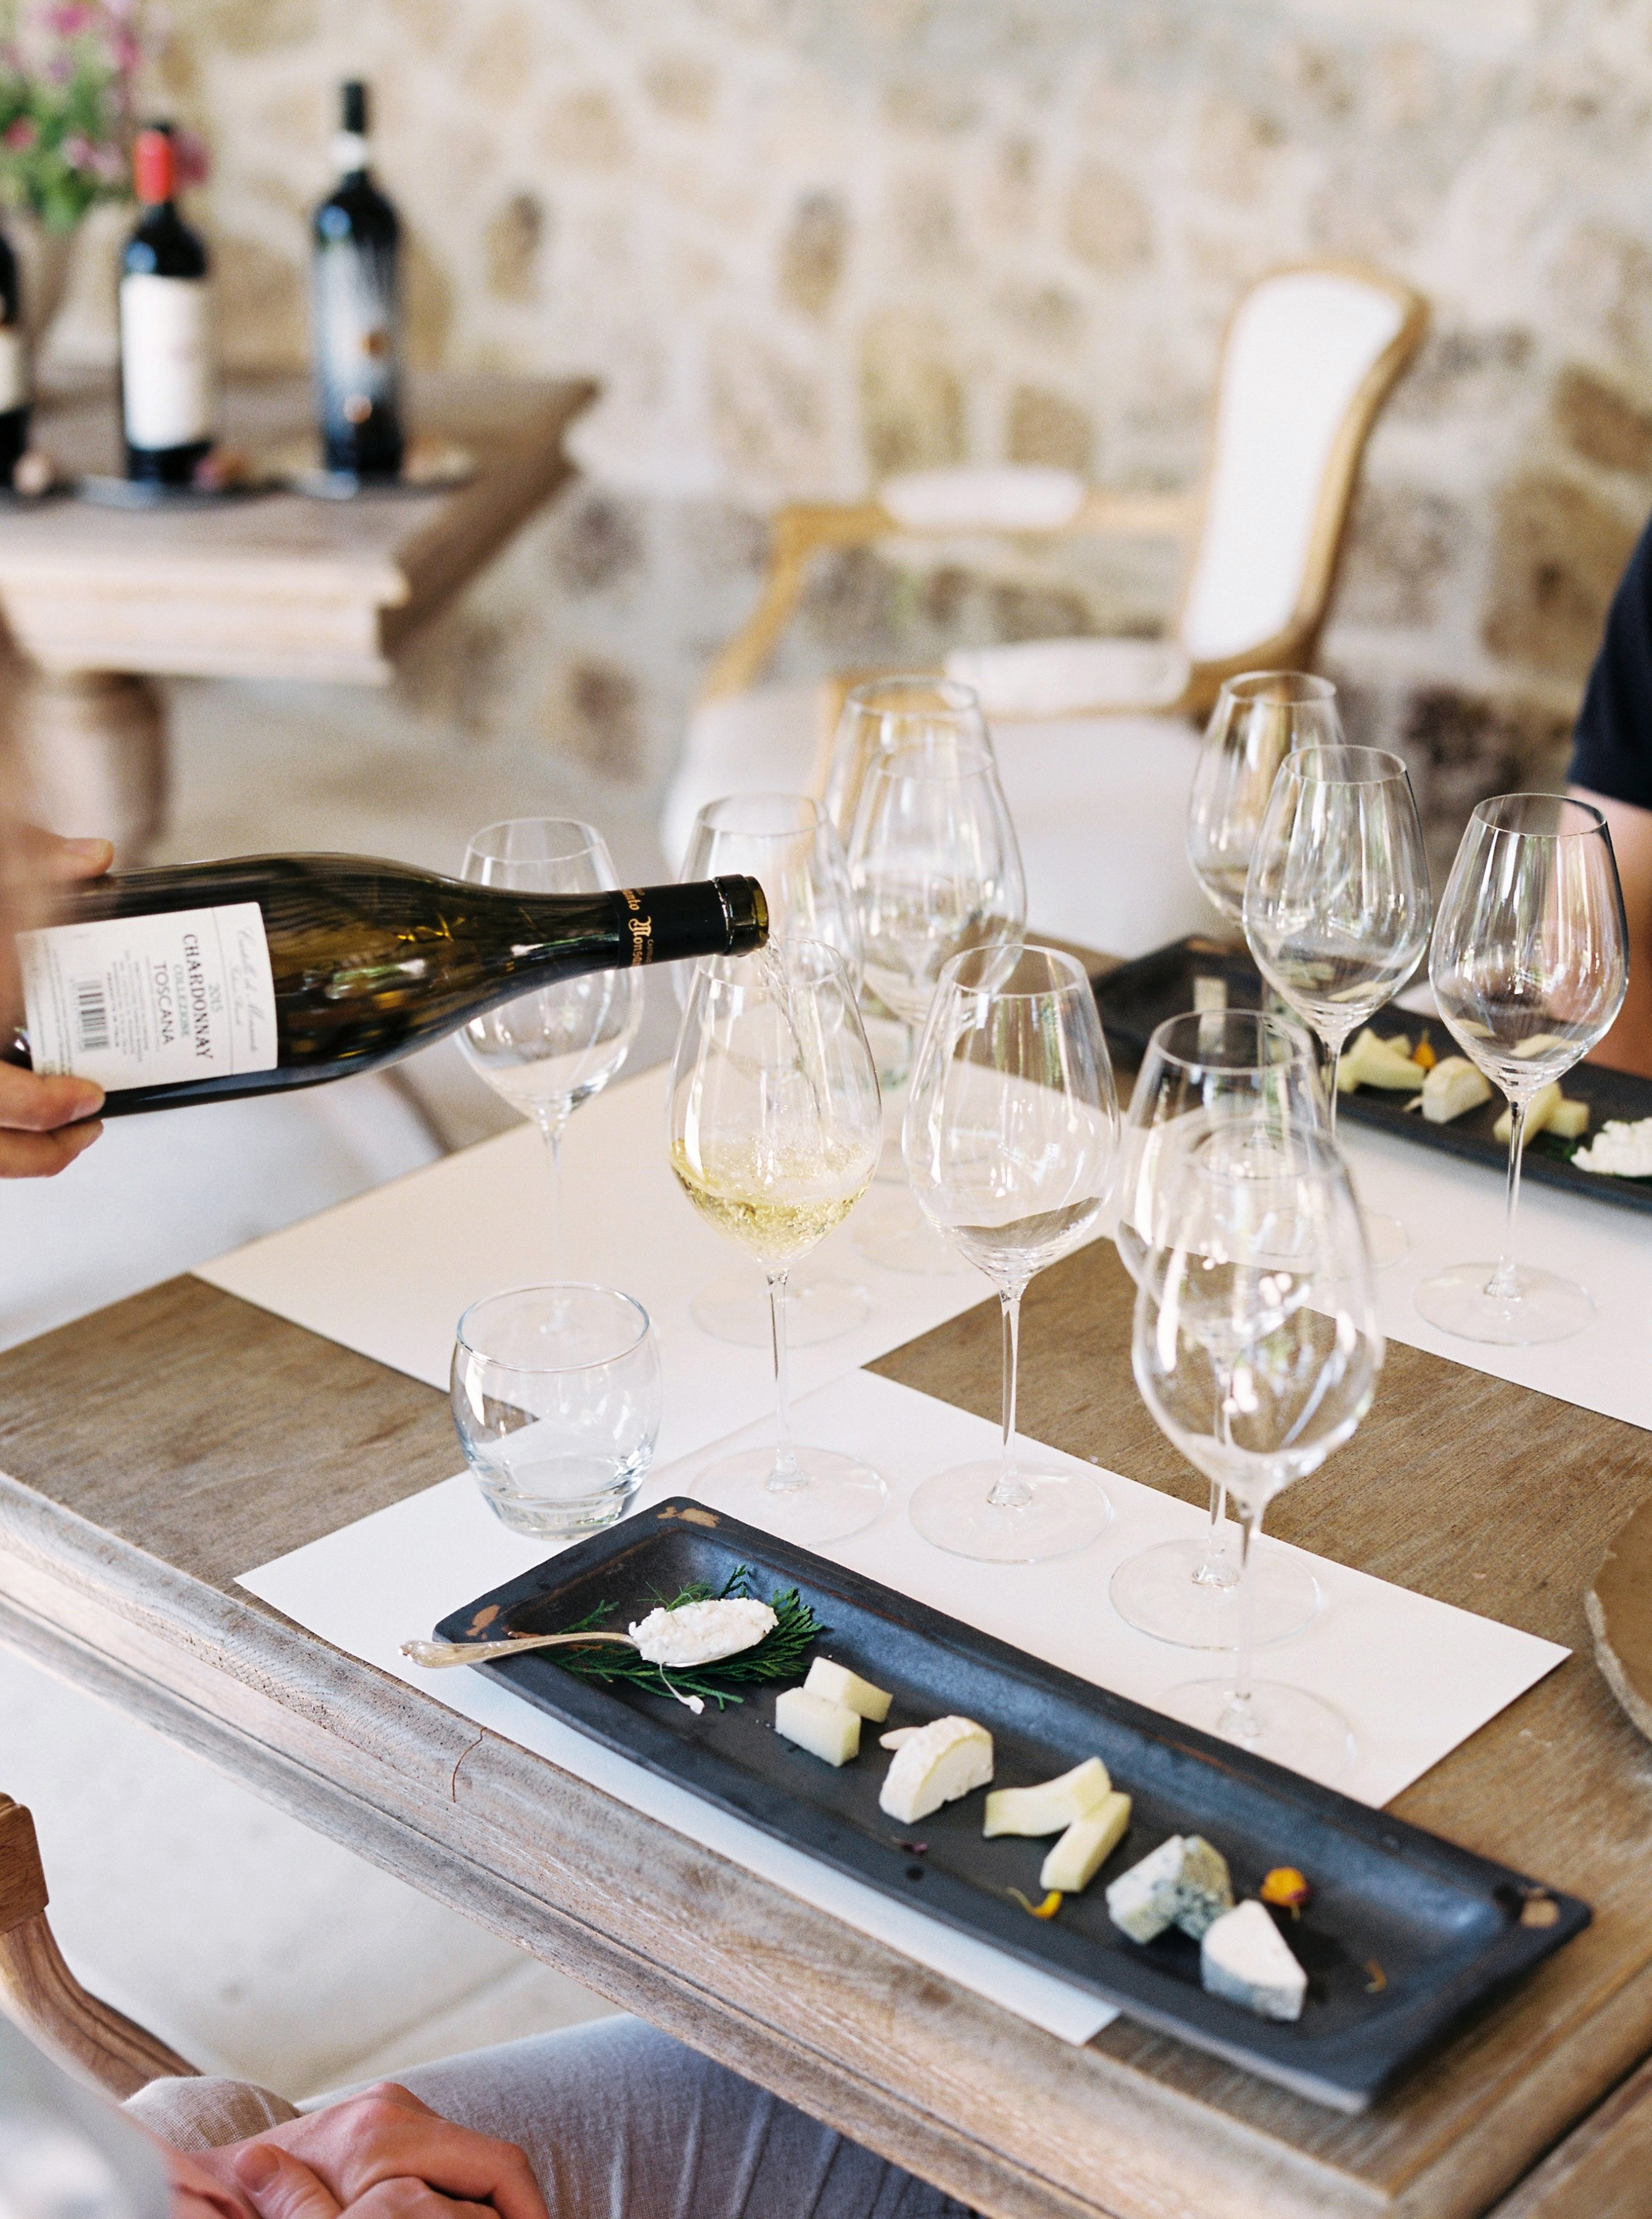 alexis zach wedding italy cheese tasting wine